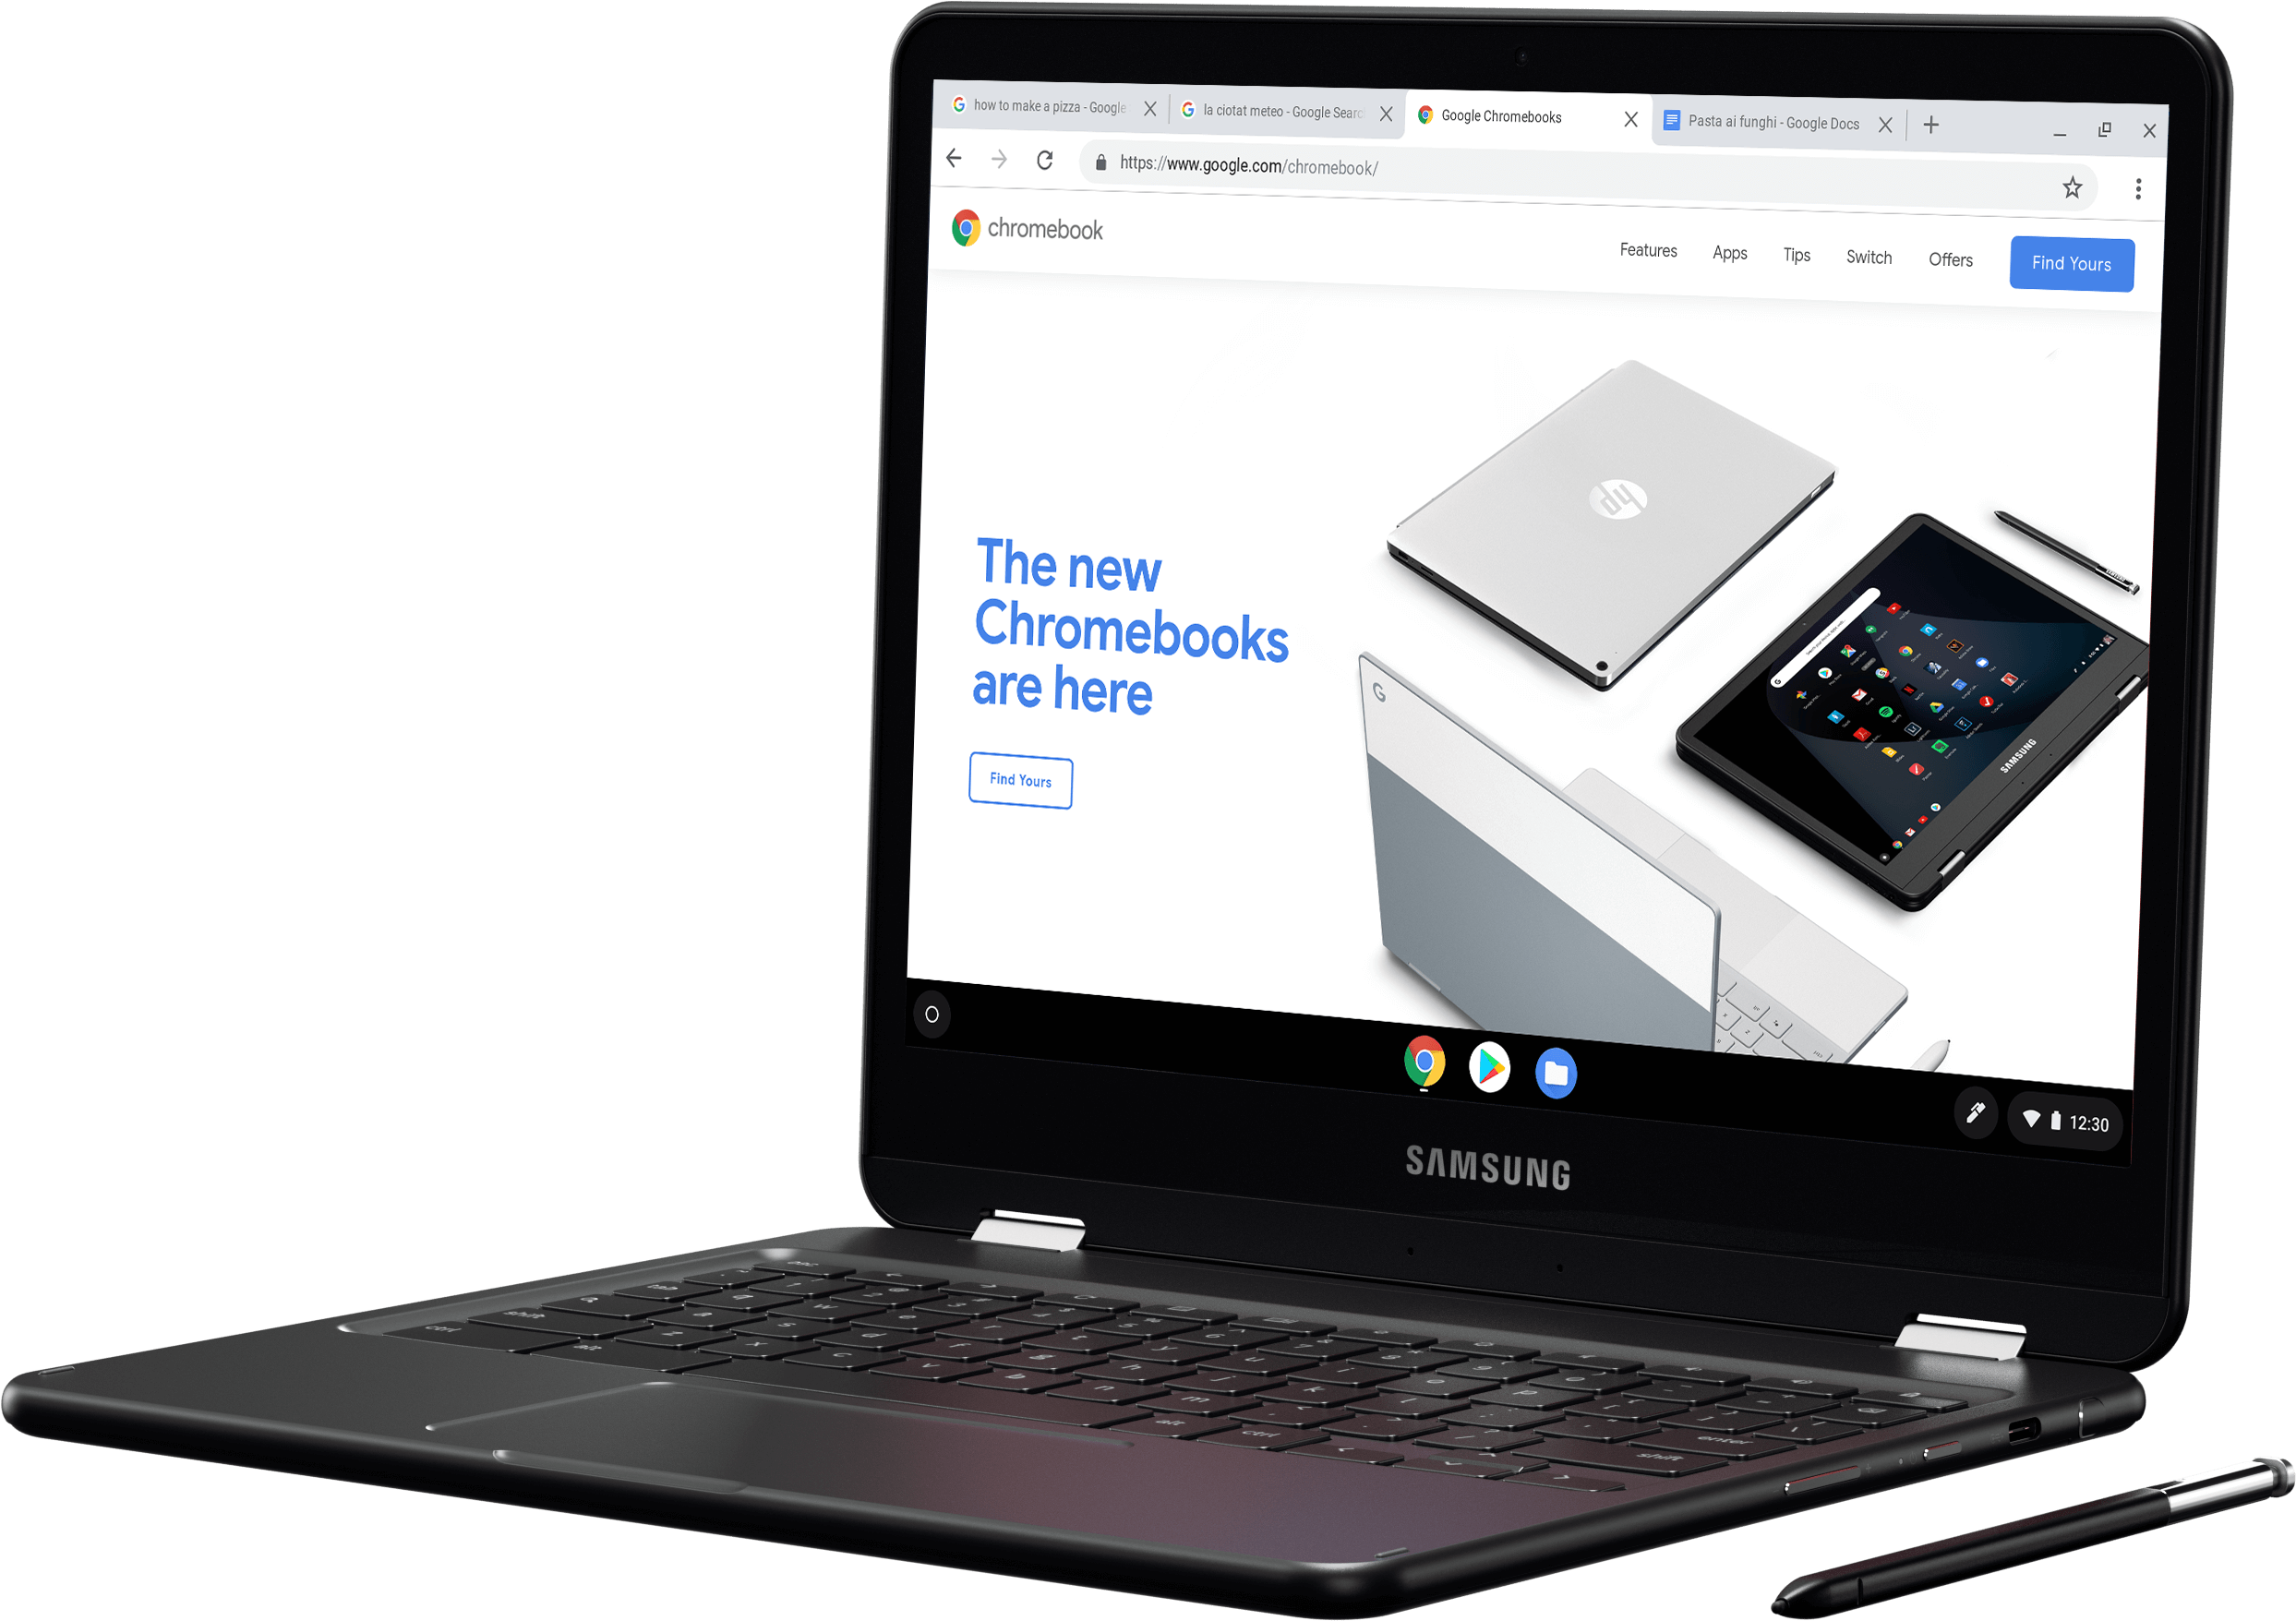 Chromebook drawing labtop. Features google chromebooks isolate